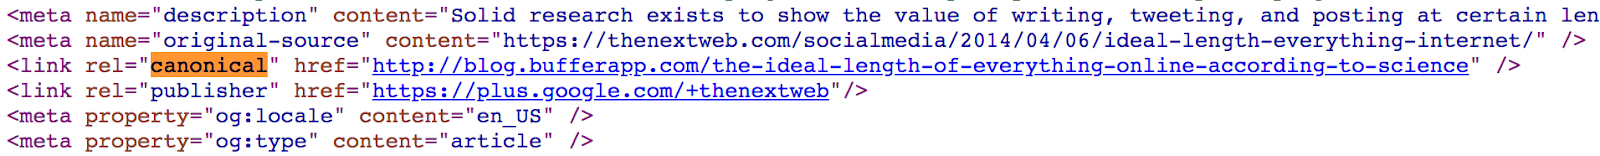 view source https thenextweb com socialmedia 2014 04 06 ideal length everything internet